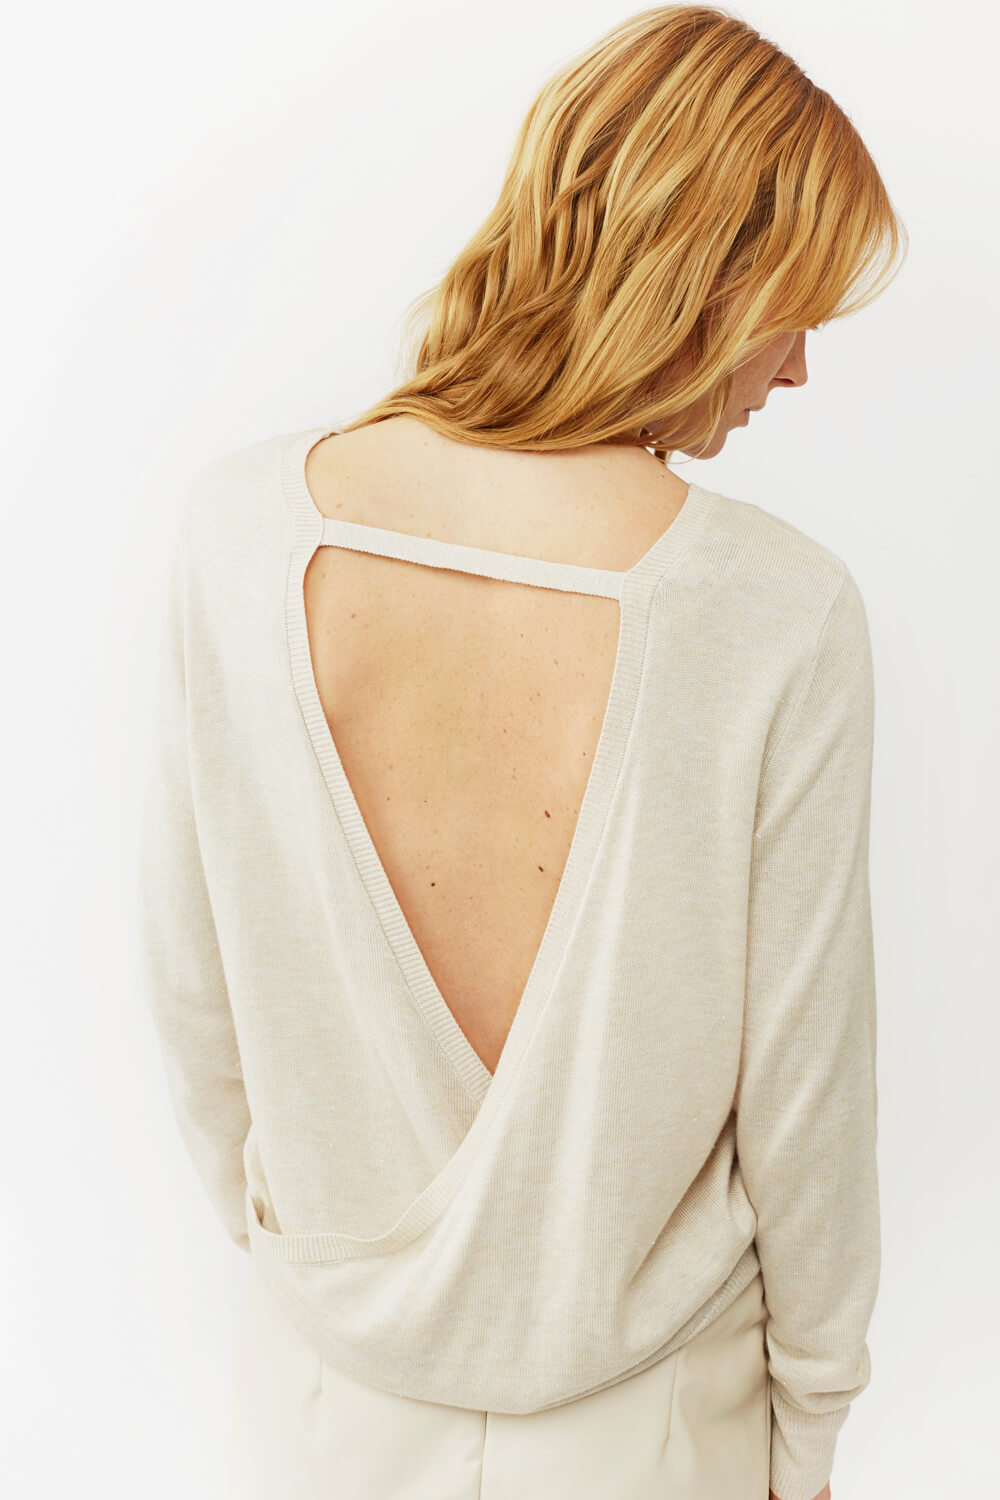 Backless Shirt | The Mustcard